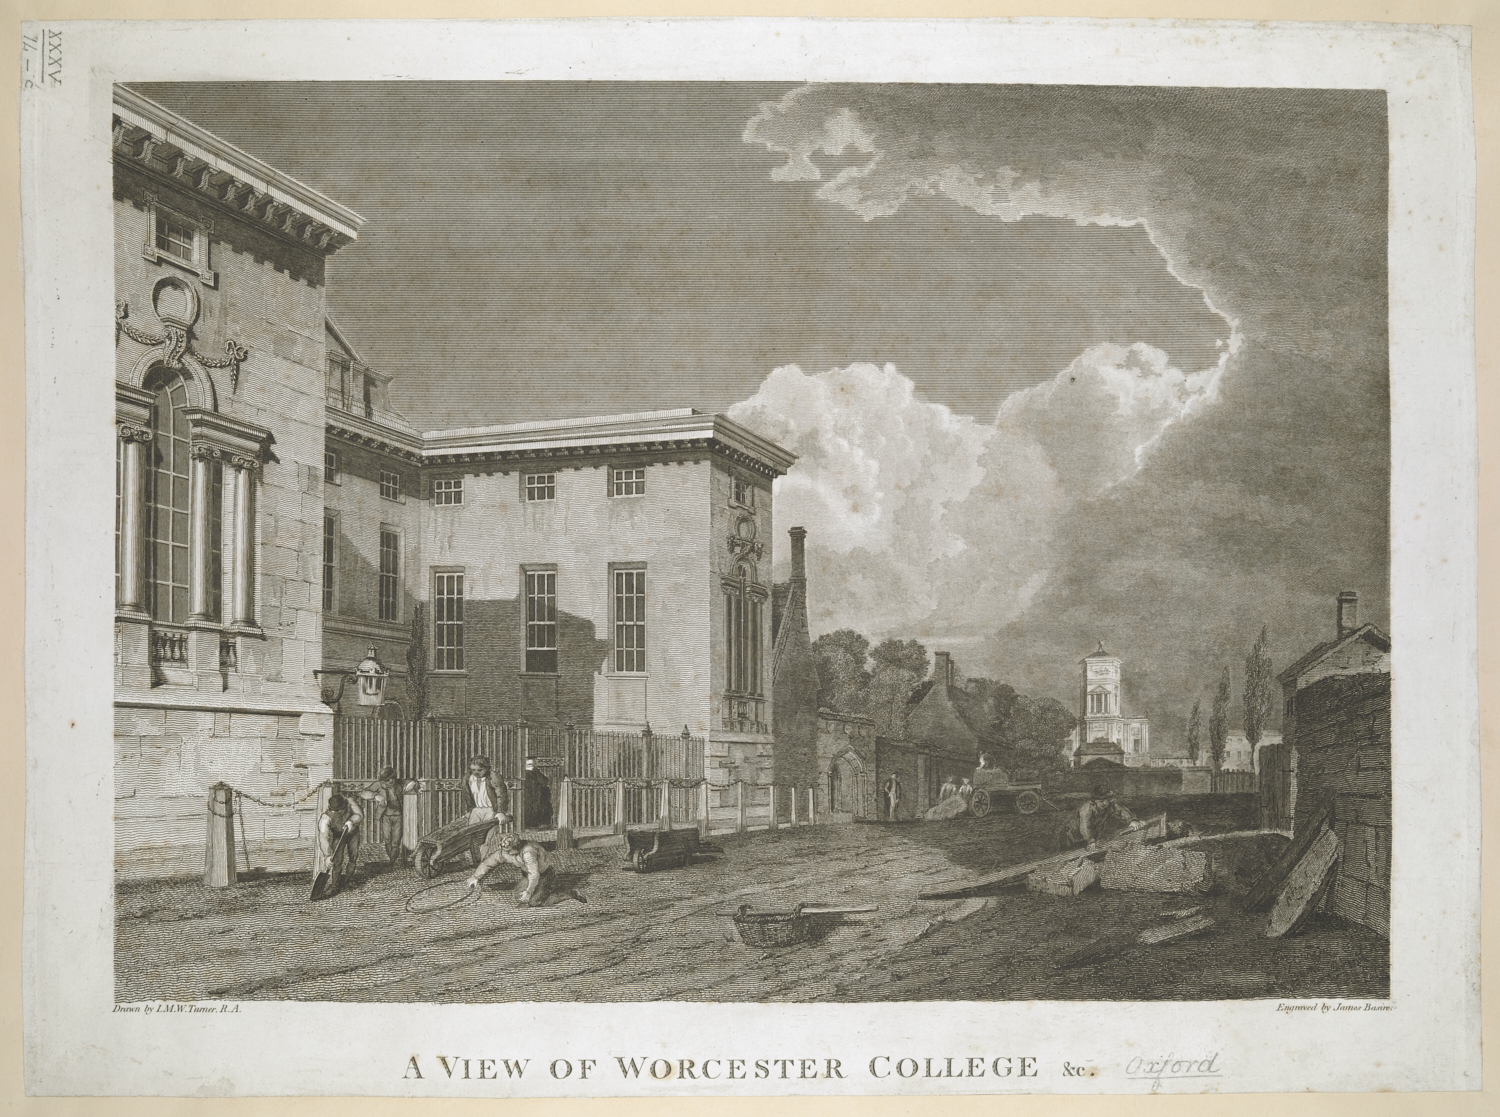 James Basire II (1769-1822) after Joseph Mallord William Turner (1775-1851), A View of Worcester College, published in the Oxford Almanack, Oxford, 1804